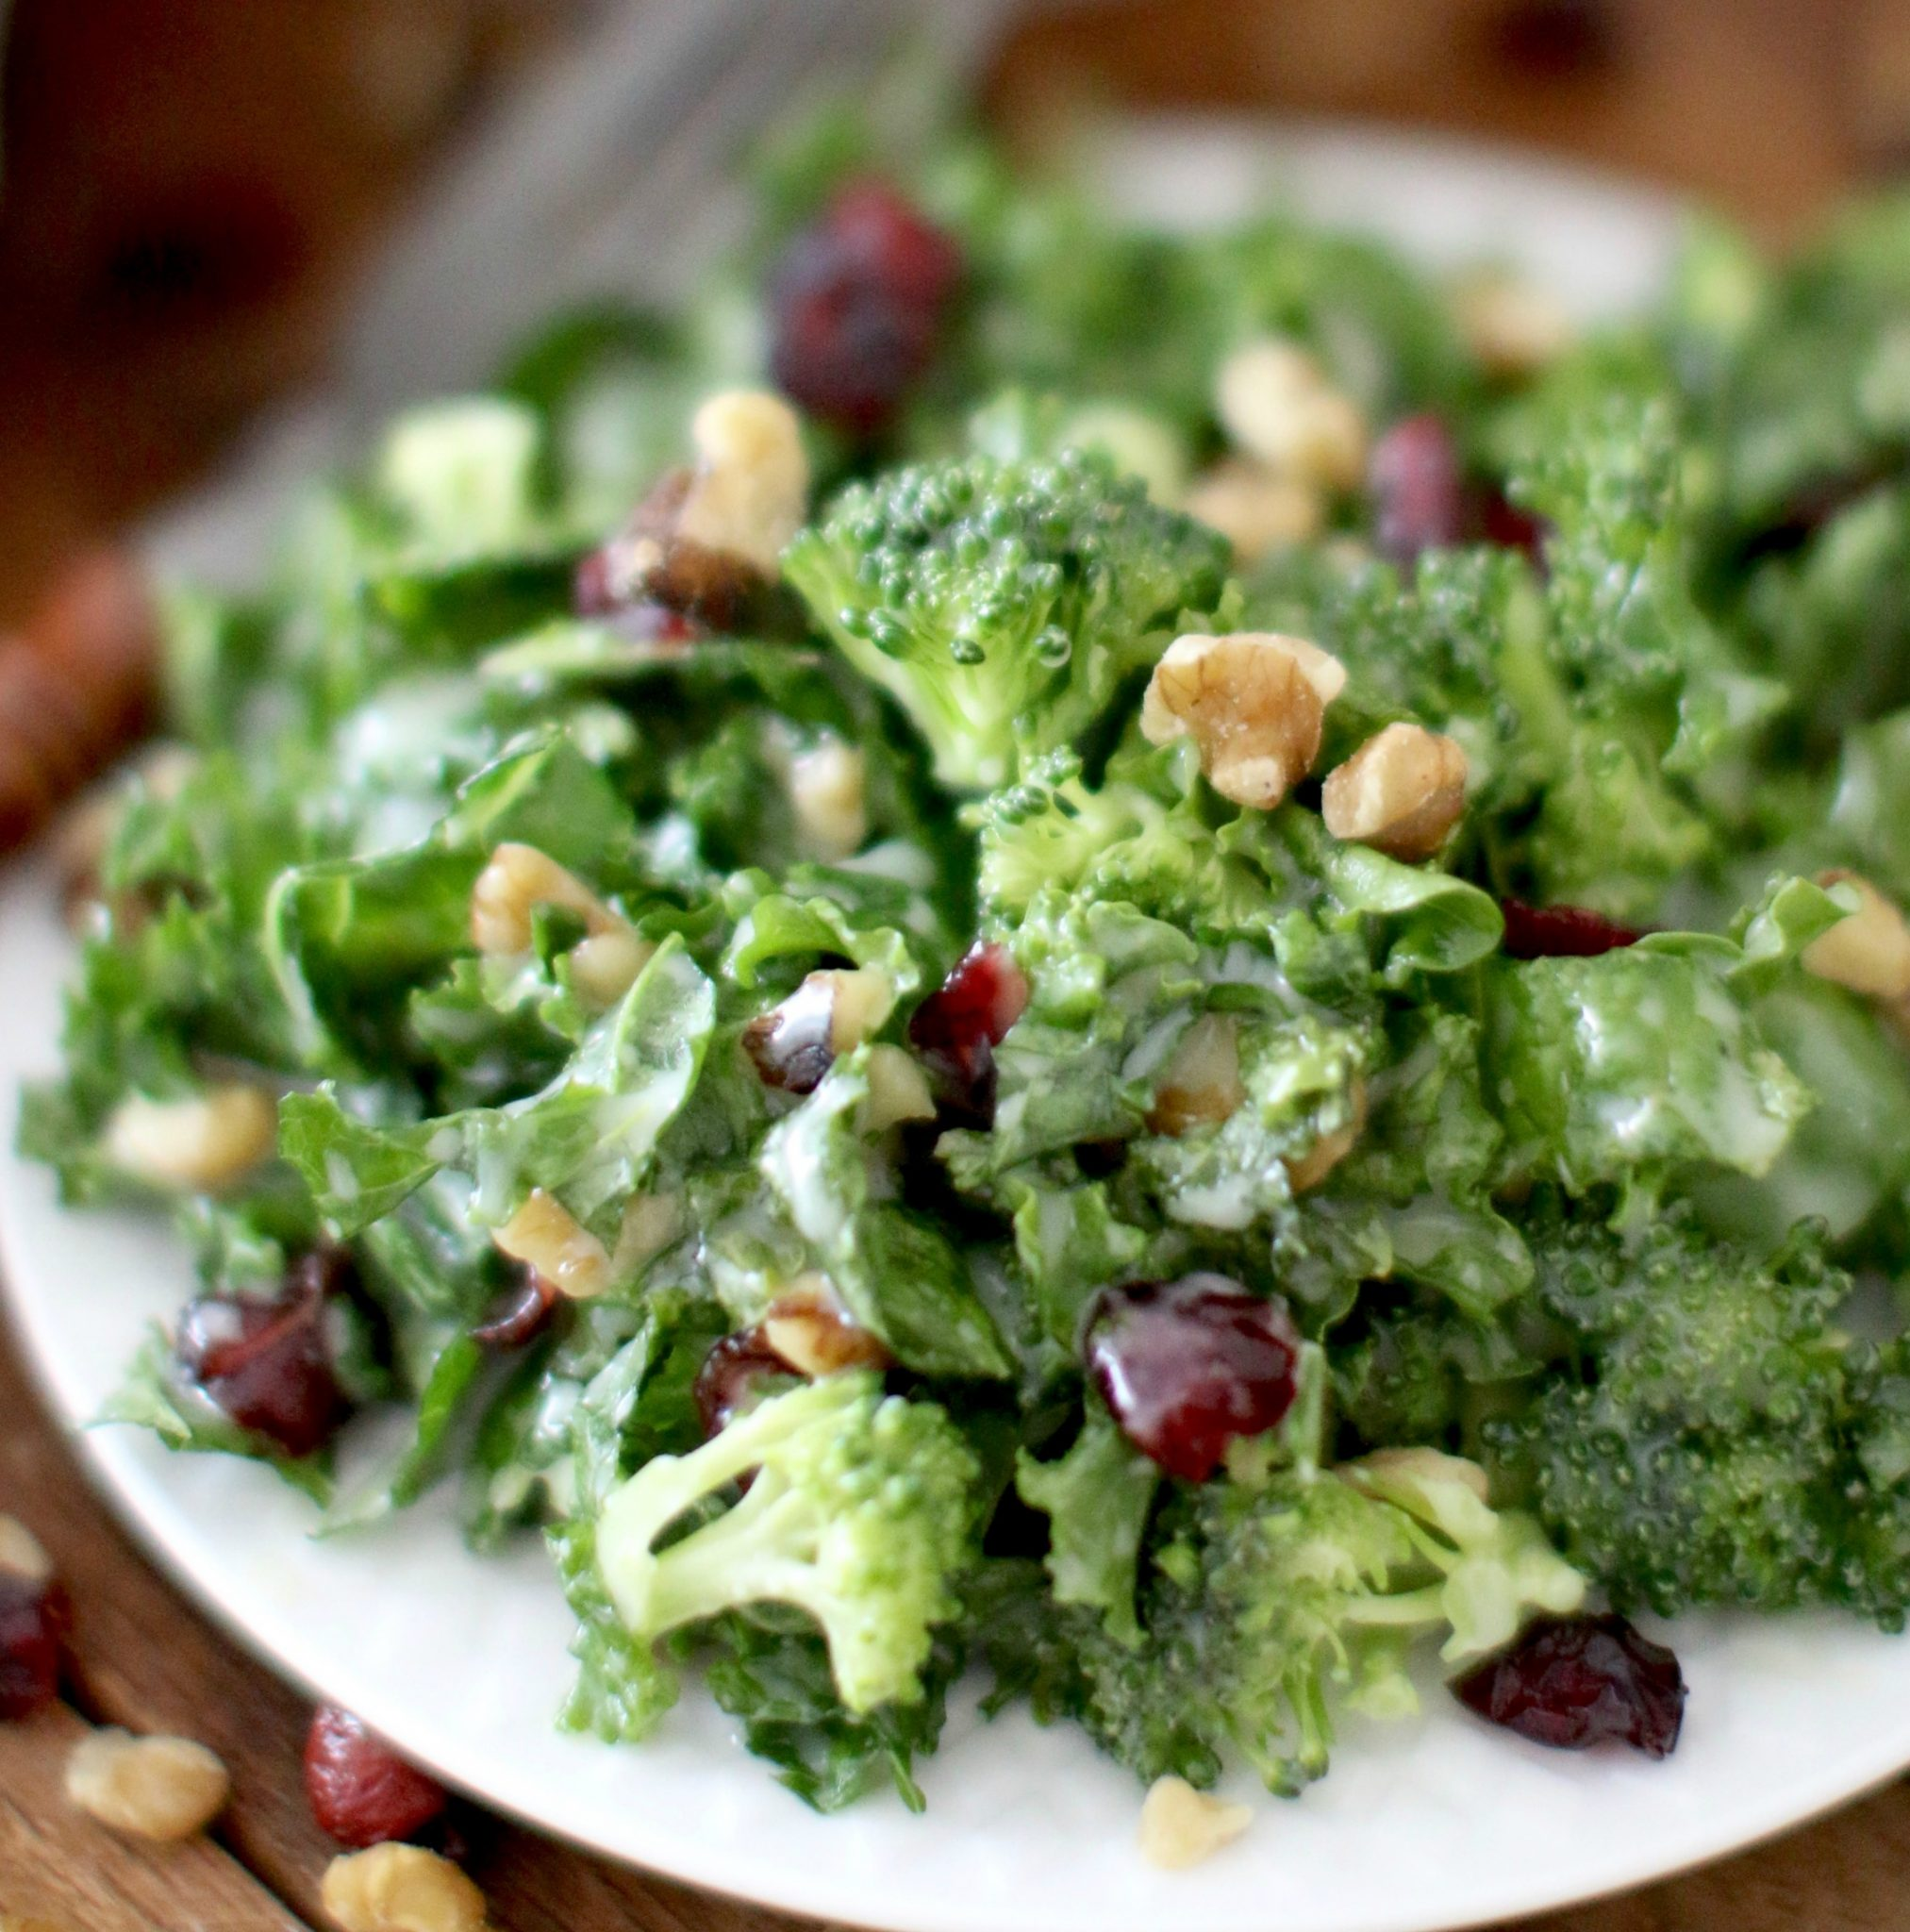 Farmhouse Rules Salad Recipes Copycat Superfood Salad Just Like Chick Fil A From The